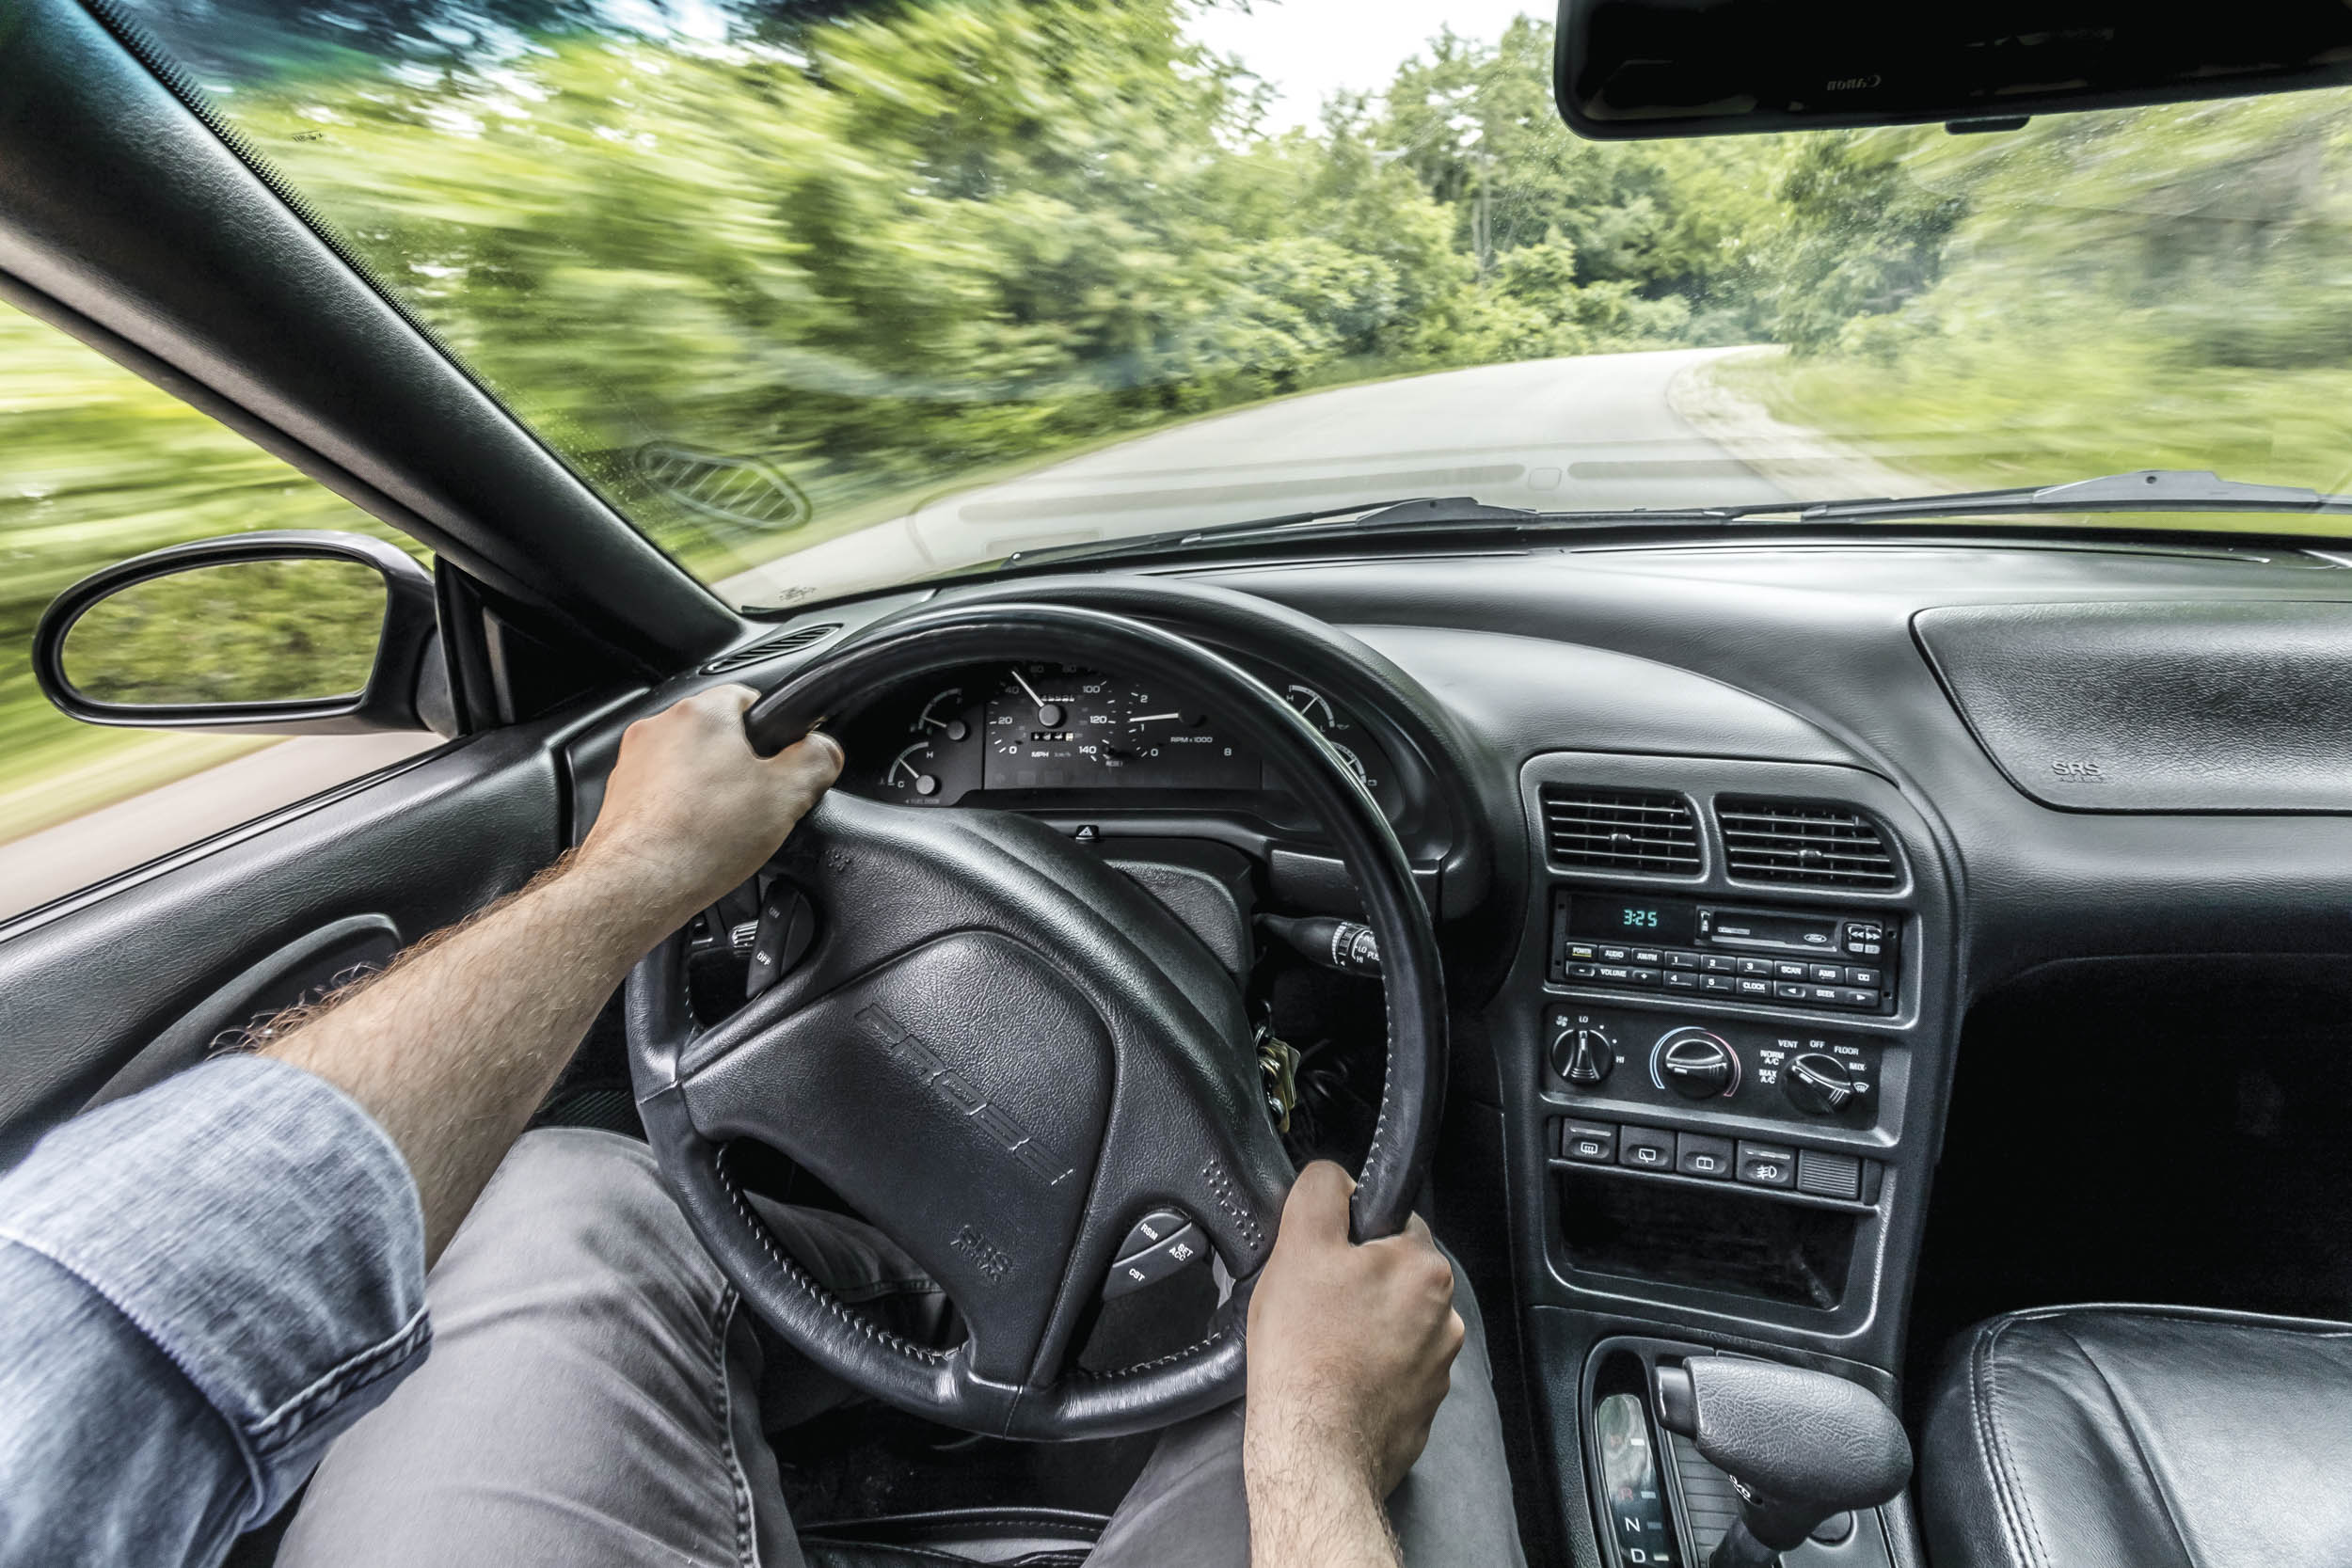 The Probe's big windshield and sharp nose make for easy placement in corners, and the bucket seats with firm upper bolsters keep the driver in place. The fourspeed automatic was optional.